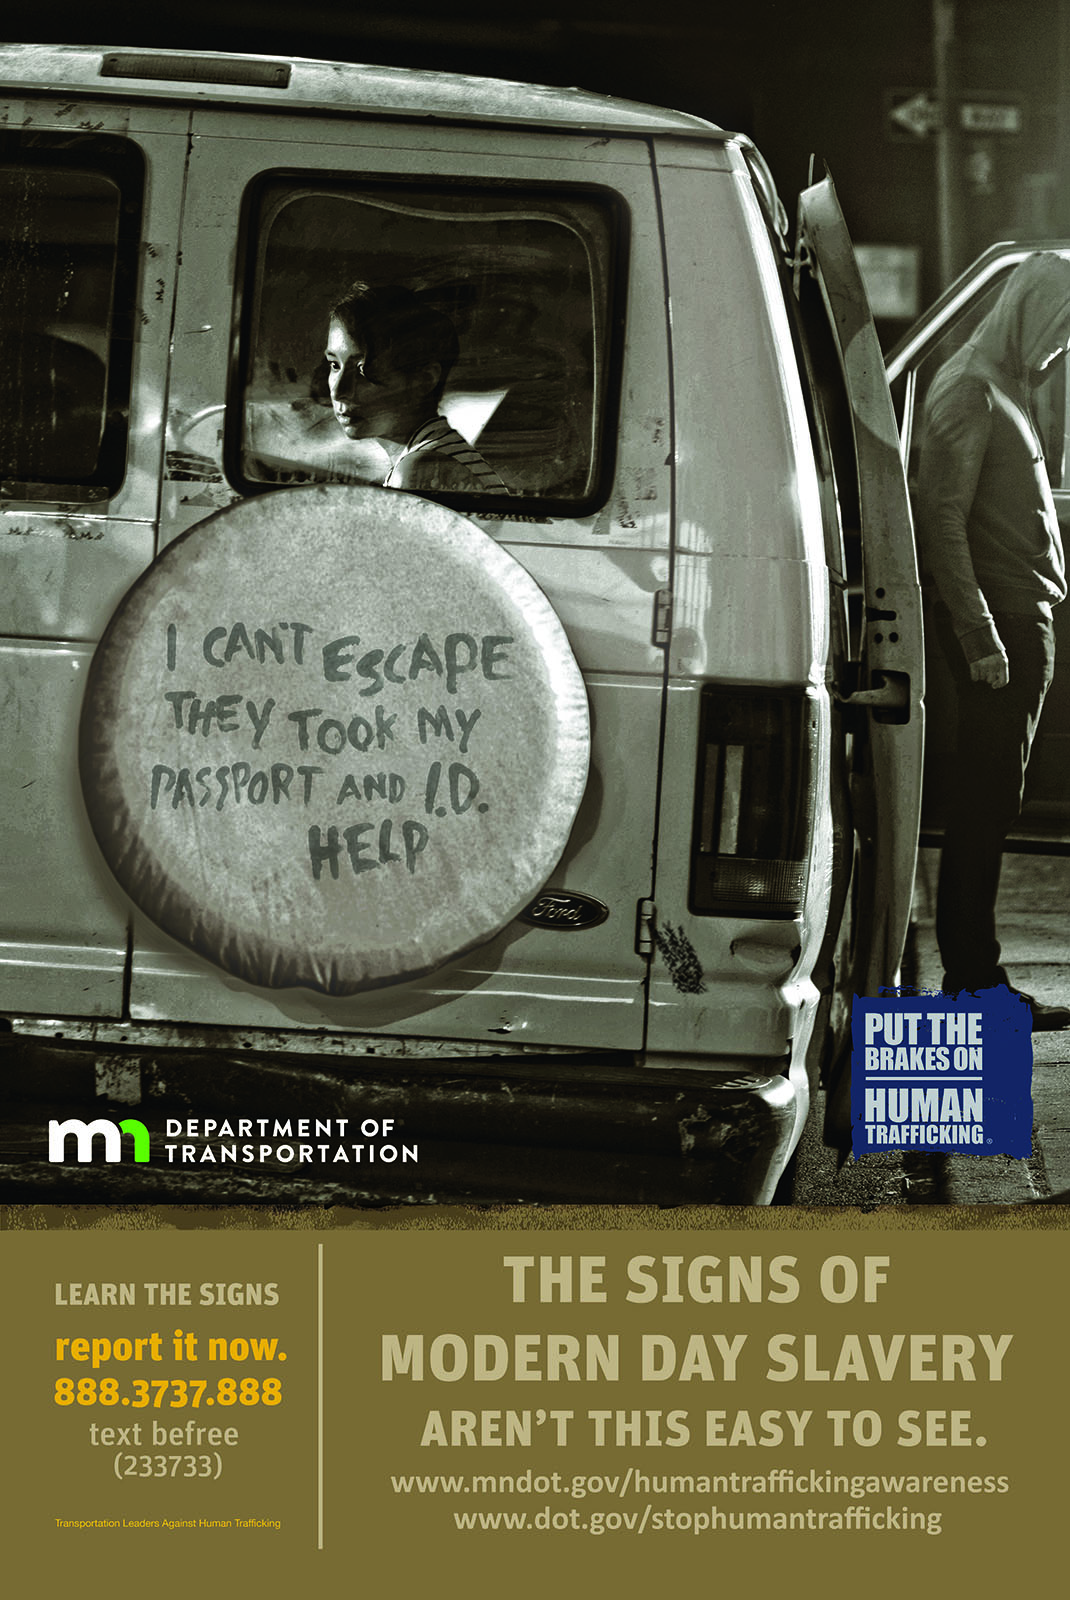 human trafficking ad There are more slaves in our world than at any other point in history but, there are also more people working to end modern-day slavery than ever before read on for 7 organizations (big and small) that are making major strides in ending human trafficking.